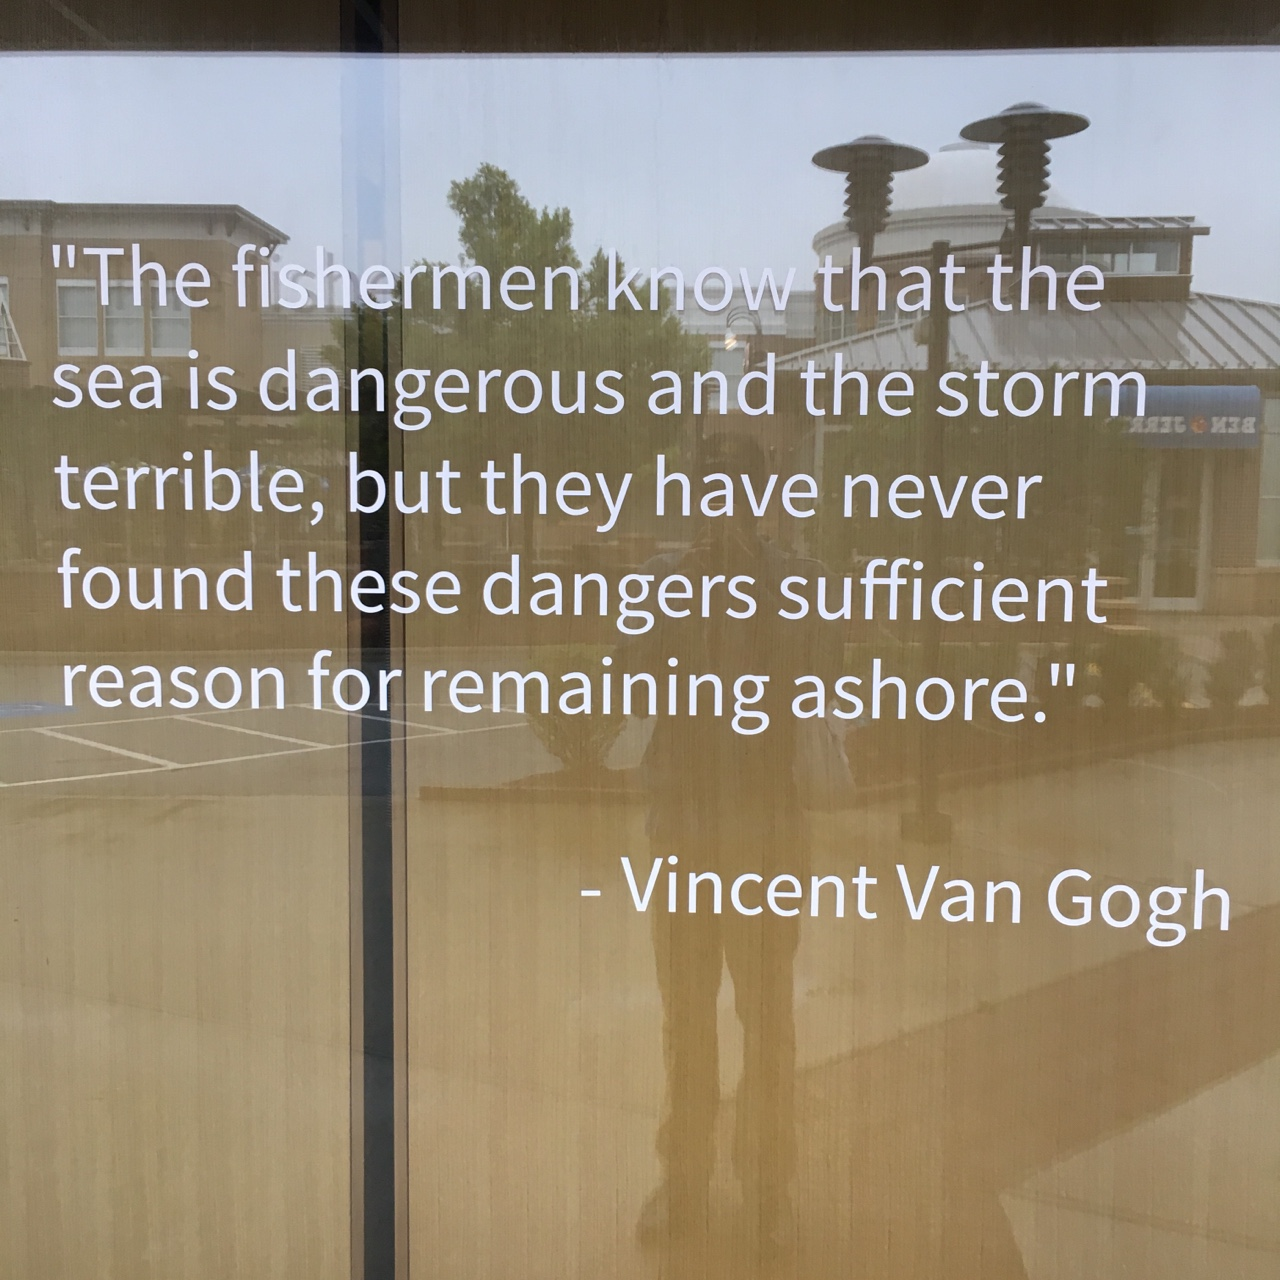 The fishermen know that the sea is dangerous and the storm is terrible